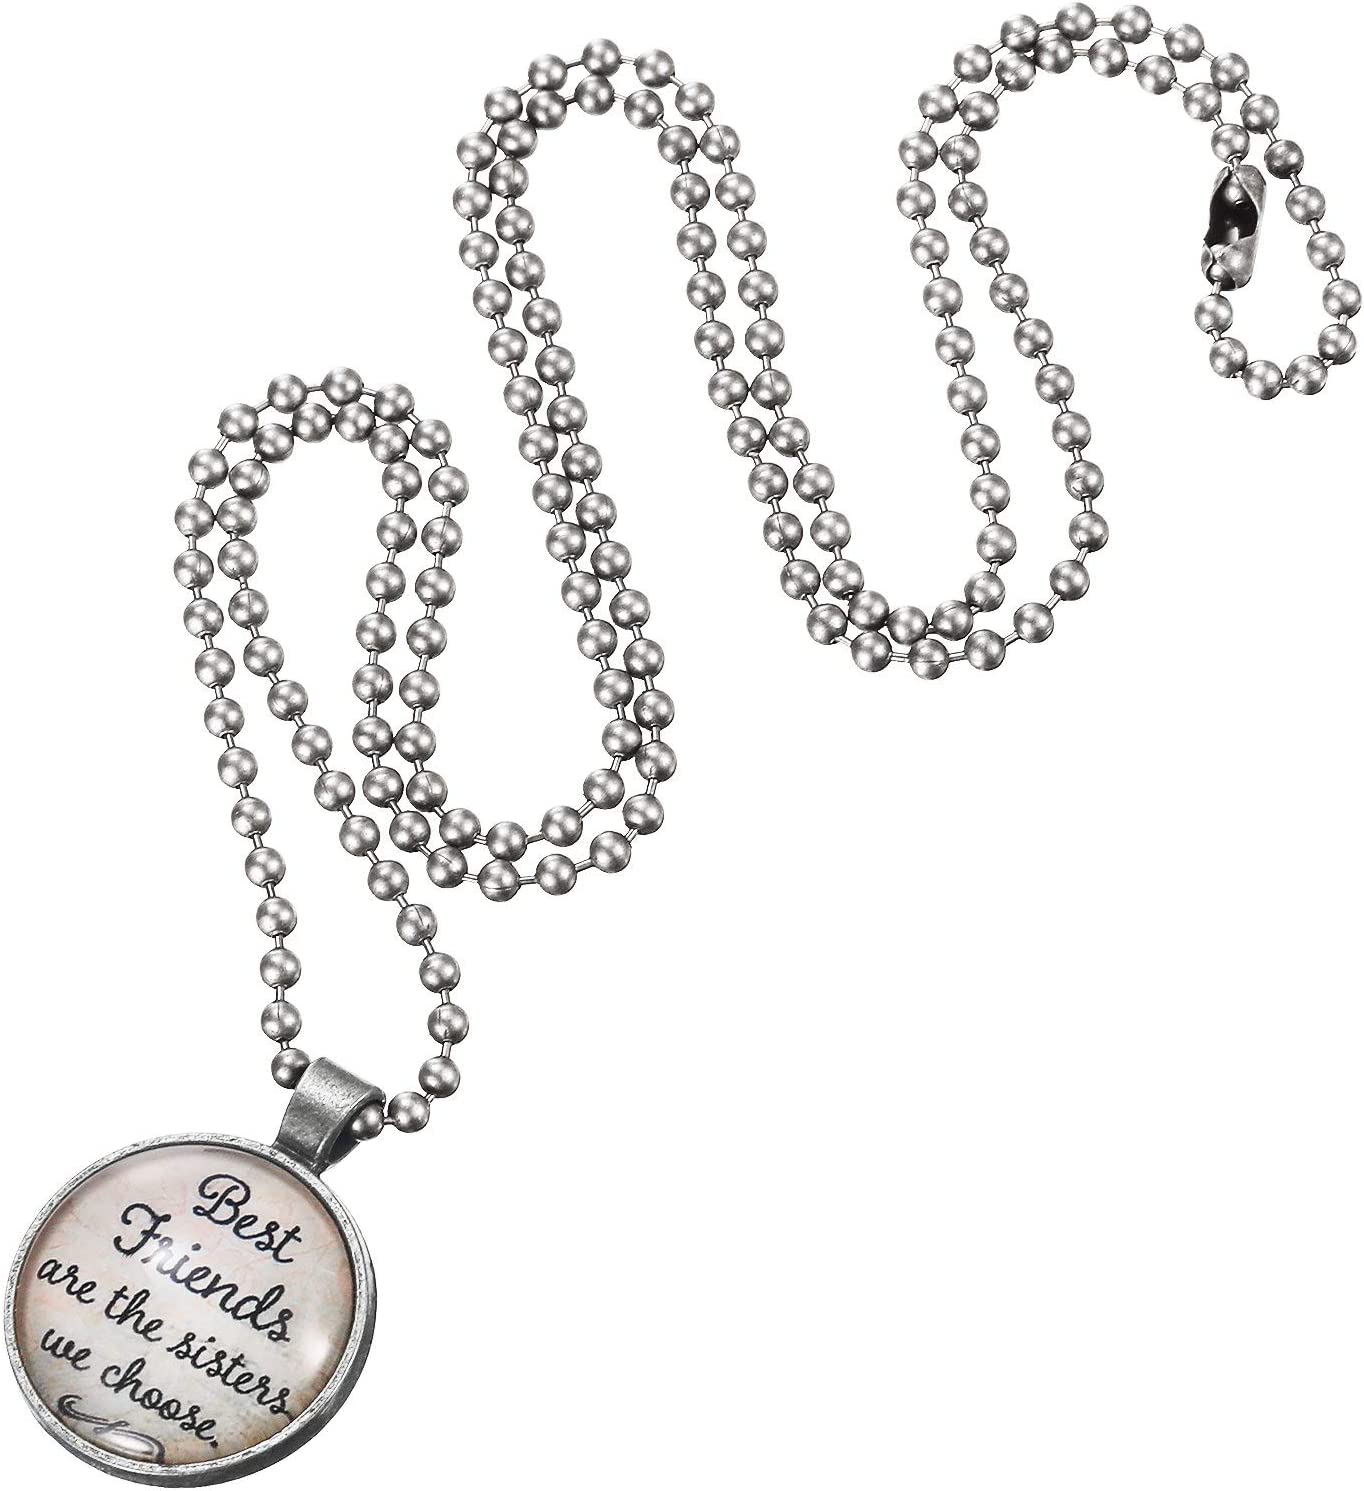 """Pull Chain, 2 Pieces 36"""" Stainless Steel Bead Chain, Great Pulling Force & Rustproof, 6 Size, 3.2mm ball chain with 4 free Matching Connectors - Silver (36 Inch- silver): Appliances"""